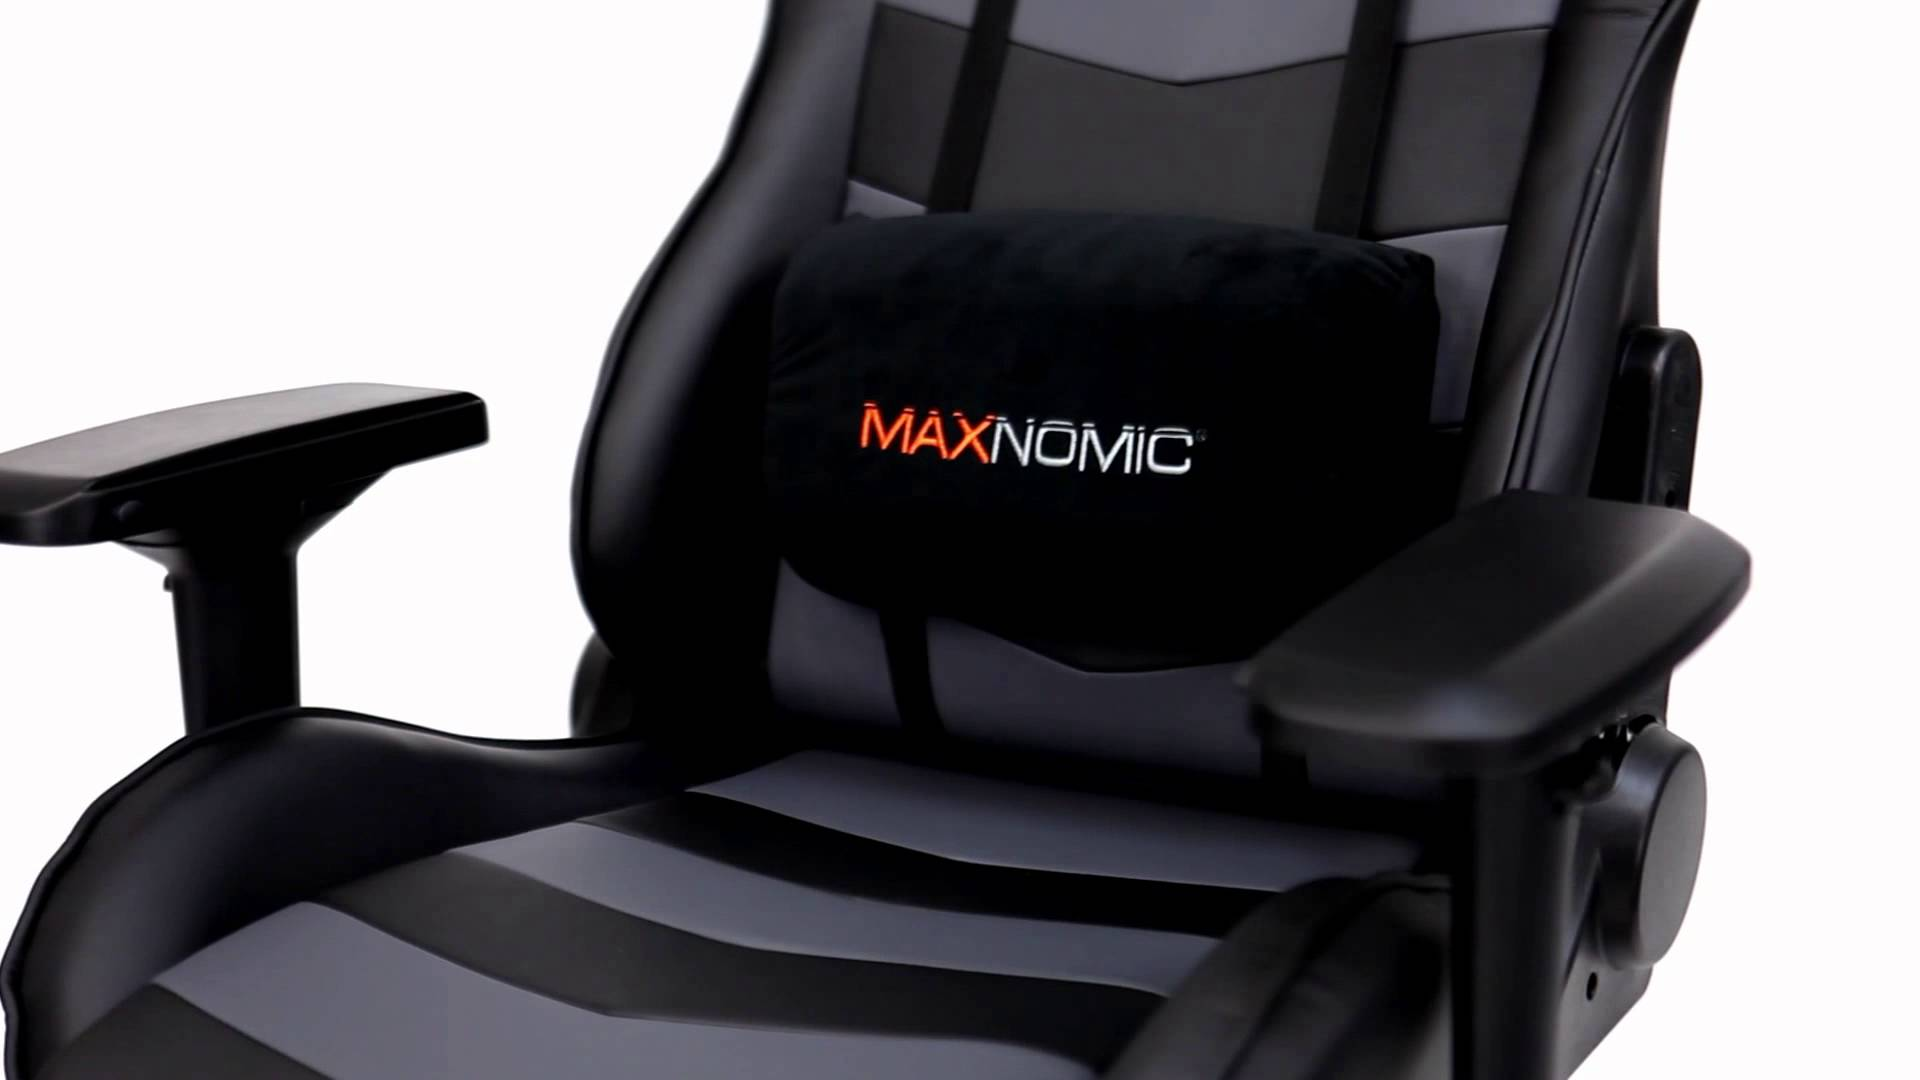 gaming chairs pc world mothers rocking chair maxnomic vs dxracer comparisons 2017